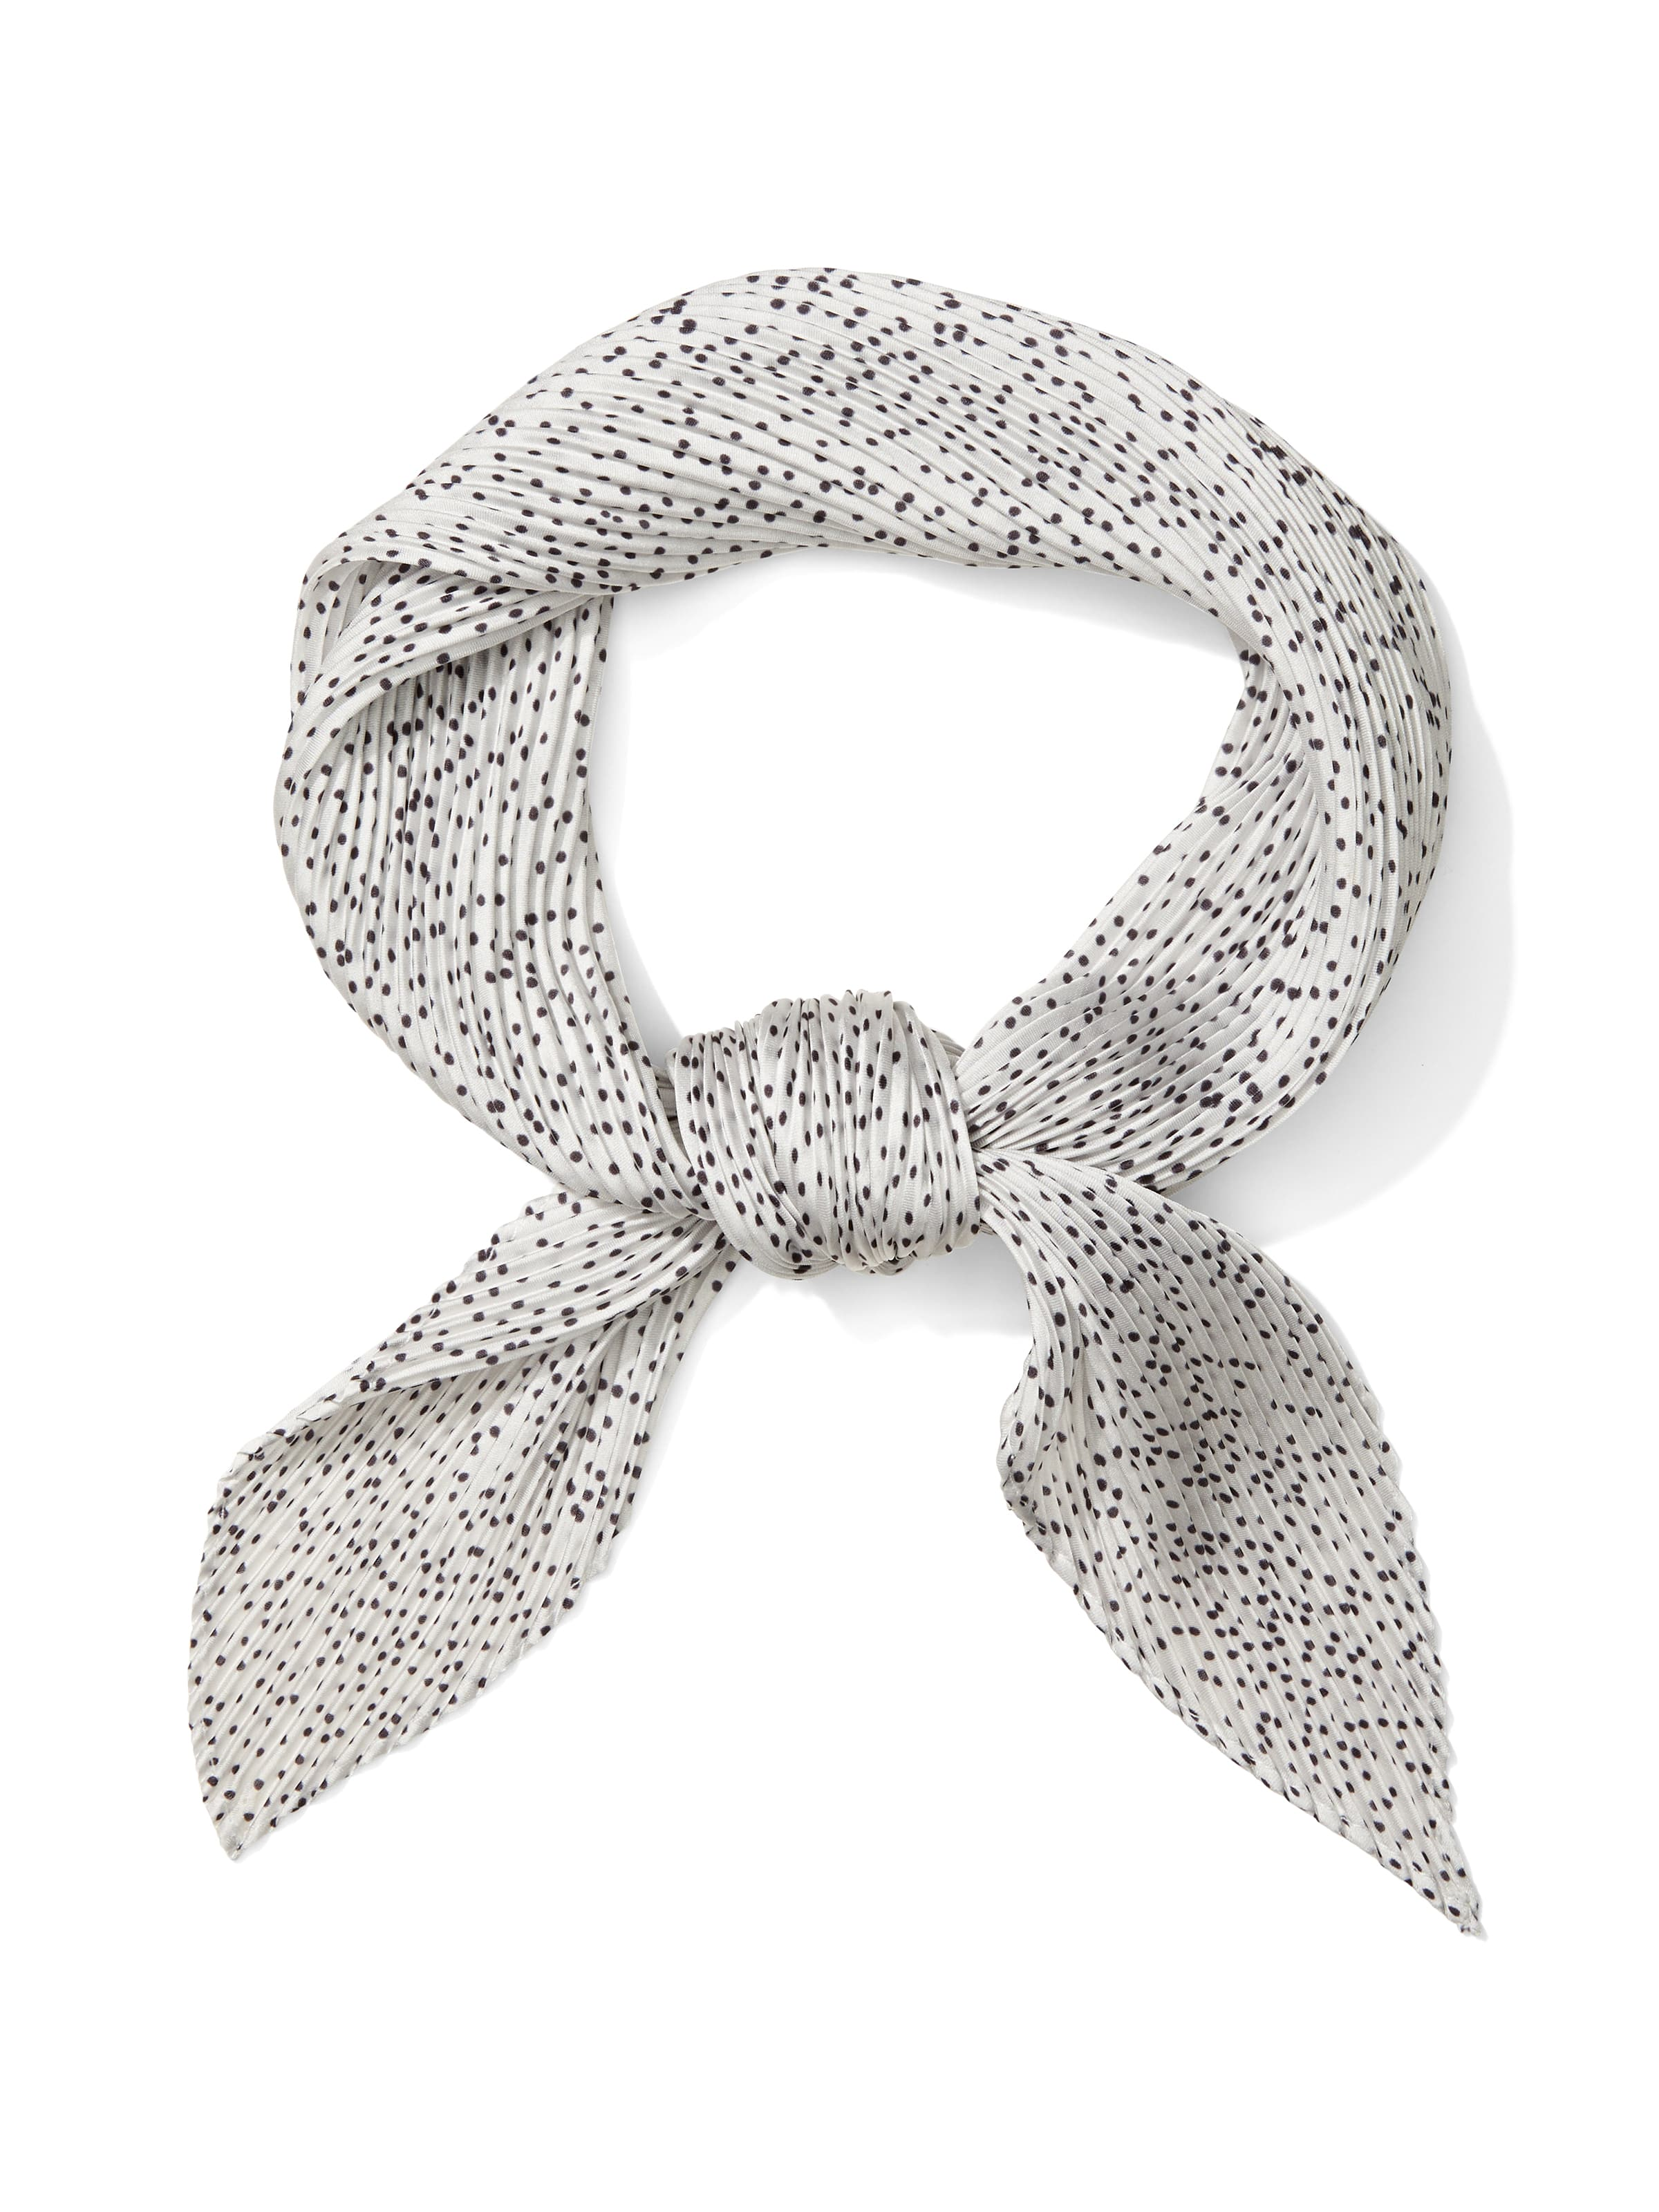 Micro Spot Pleat Neckerchief